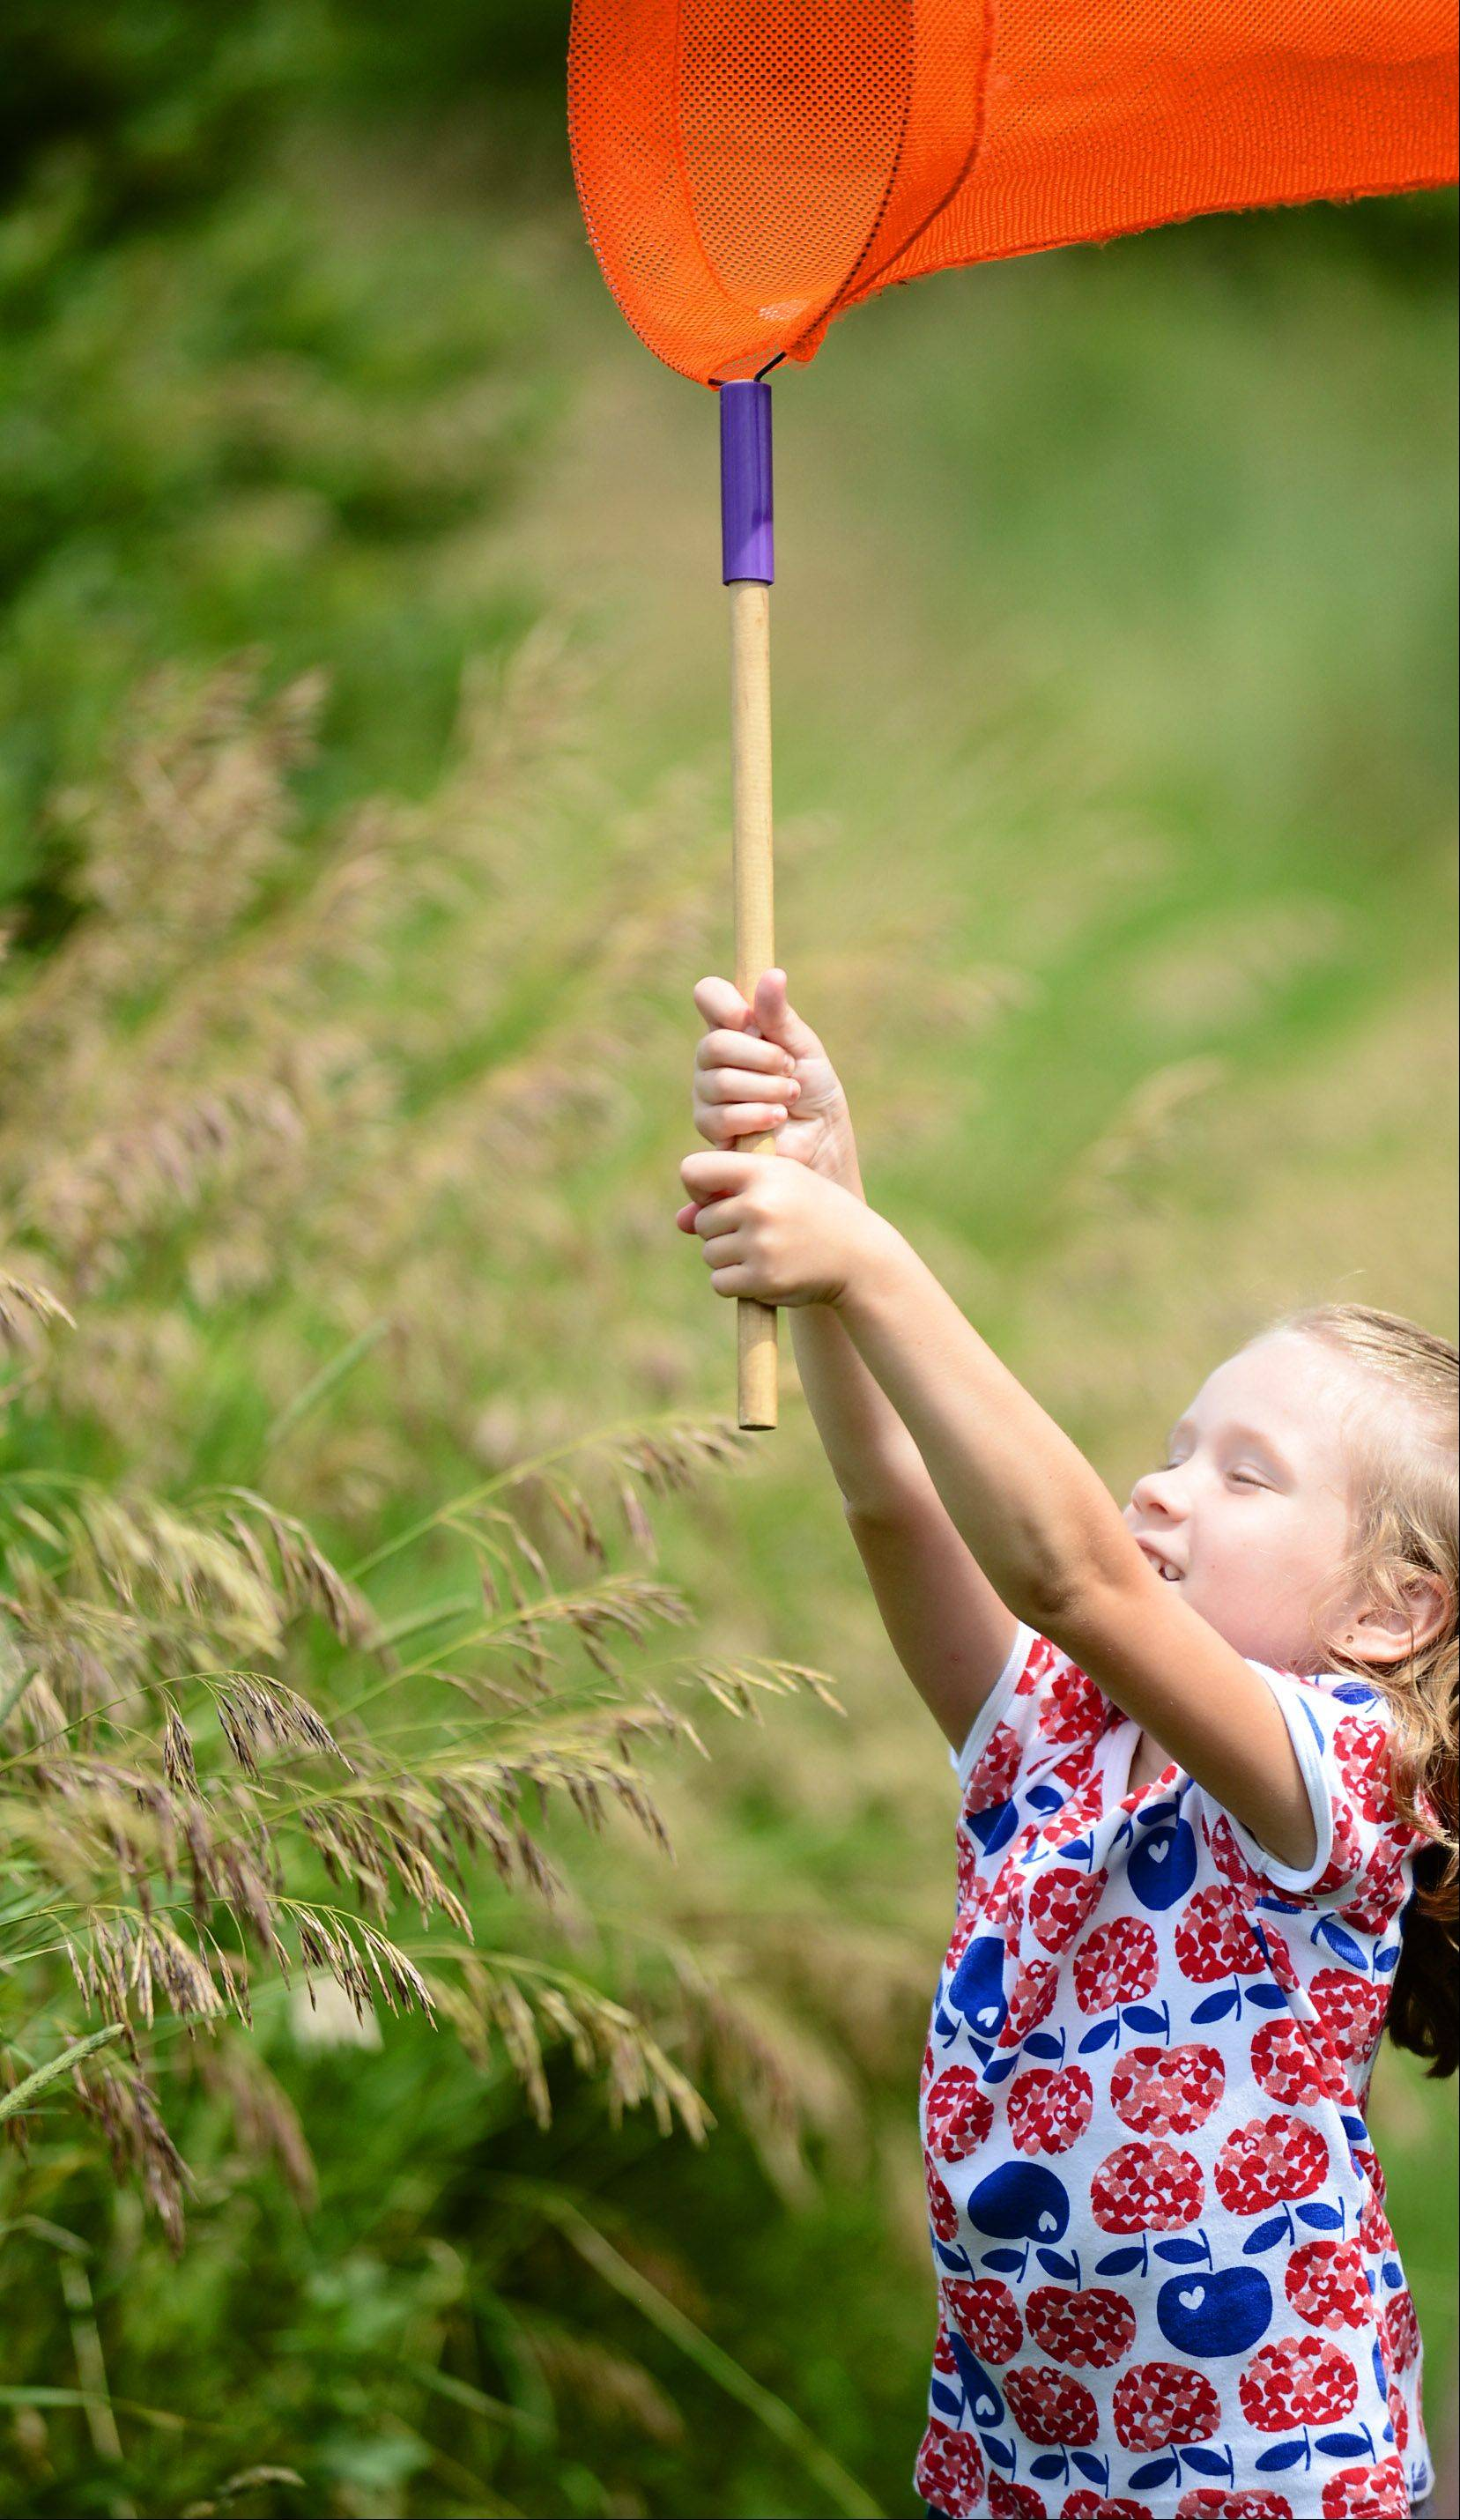 Grace Vanderheyden, 5, of Sugar Grove, runs to catch a butterfly at the Kane County Forest Preserve District's Prairie Butterflies event. The event was held at Dick Young Forest Preserve in Batavia on Saturday.